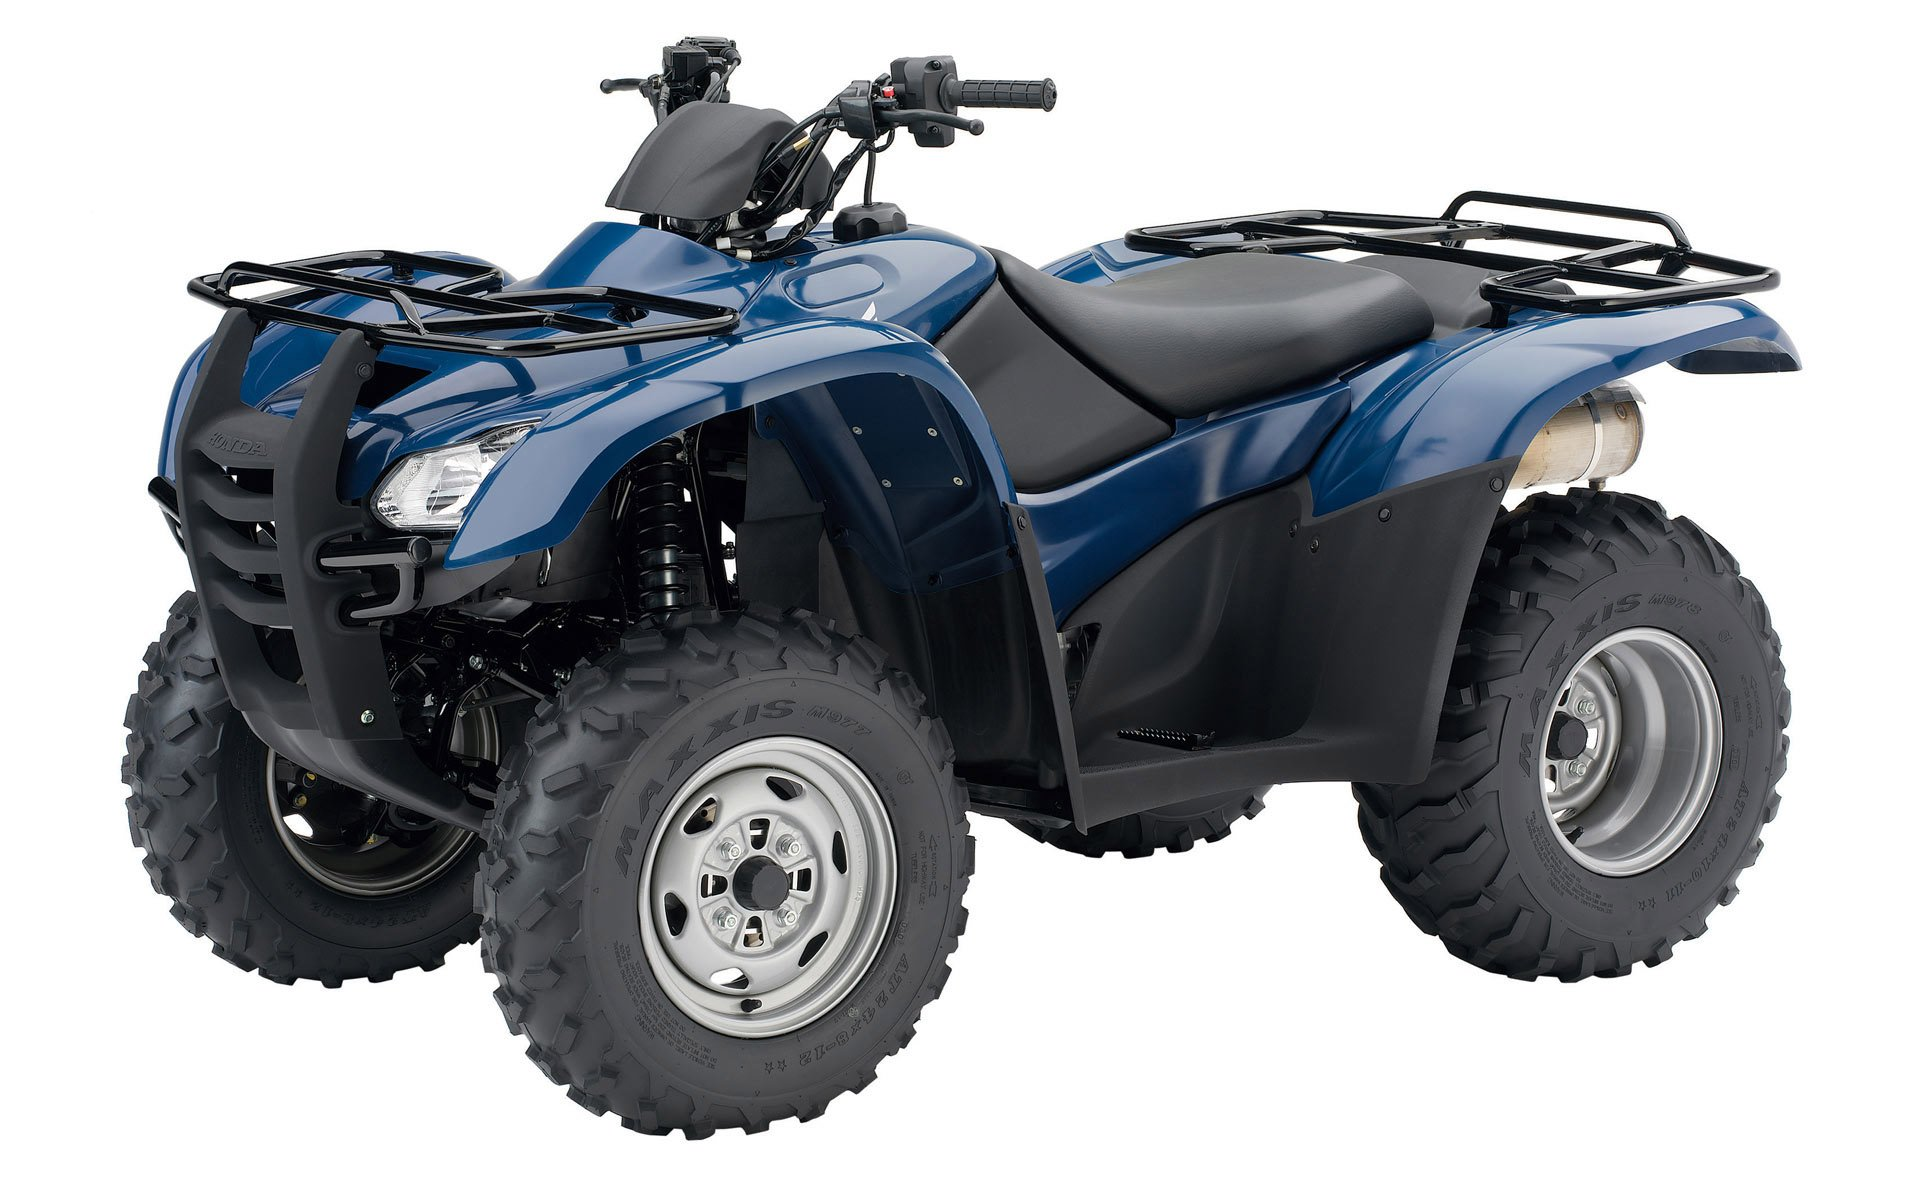 Blue Bike Honda 4 wheel drive wallpapers and images   wallpapers 1920x1200